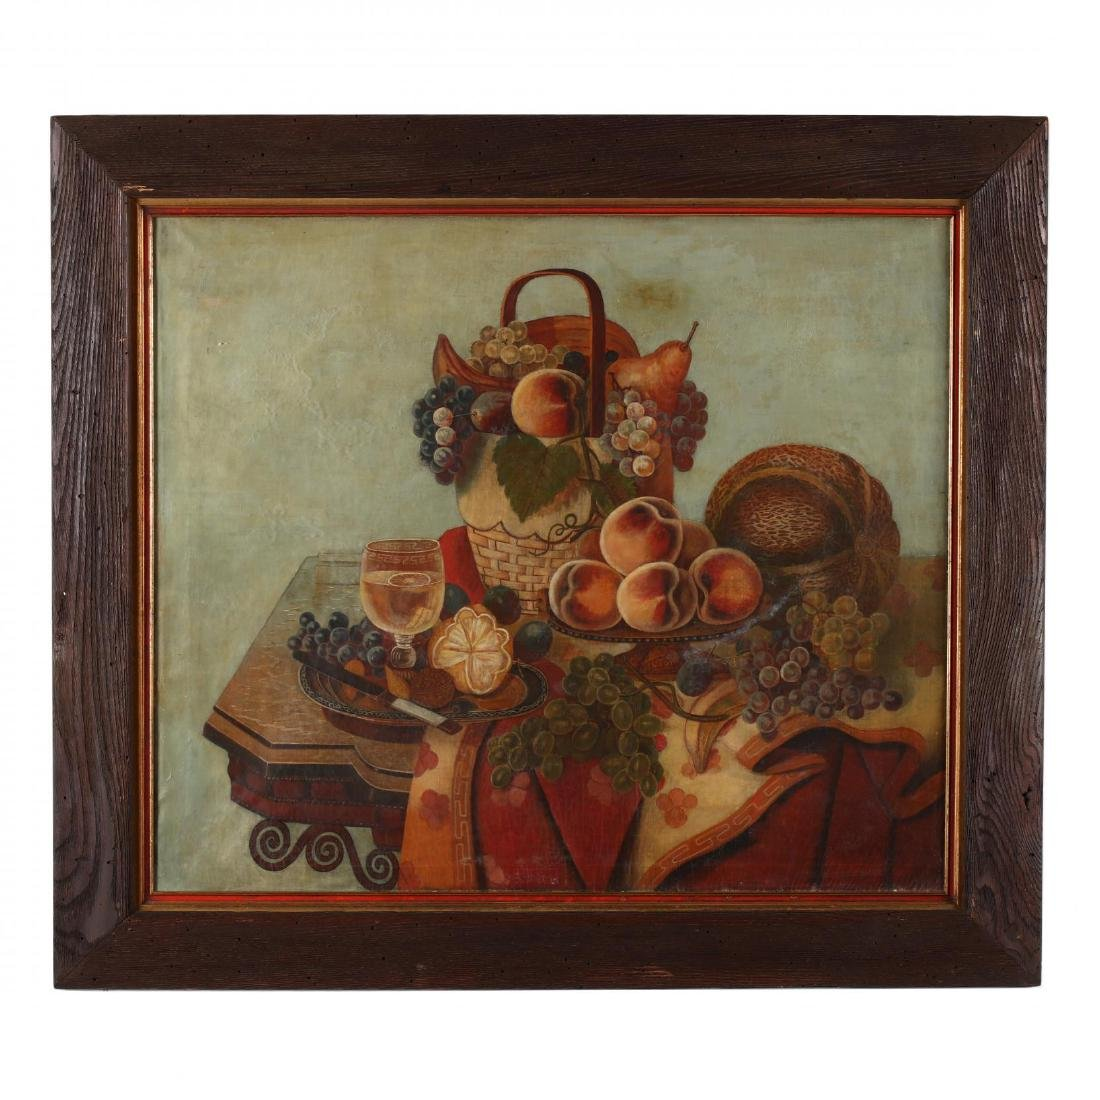 A Vintage Tabletop Still Life Painting with Fruit